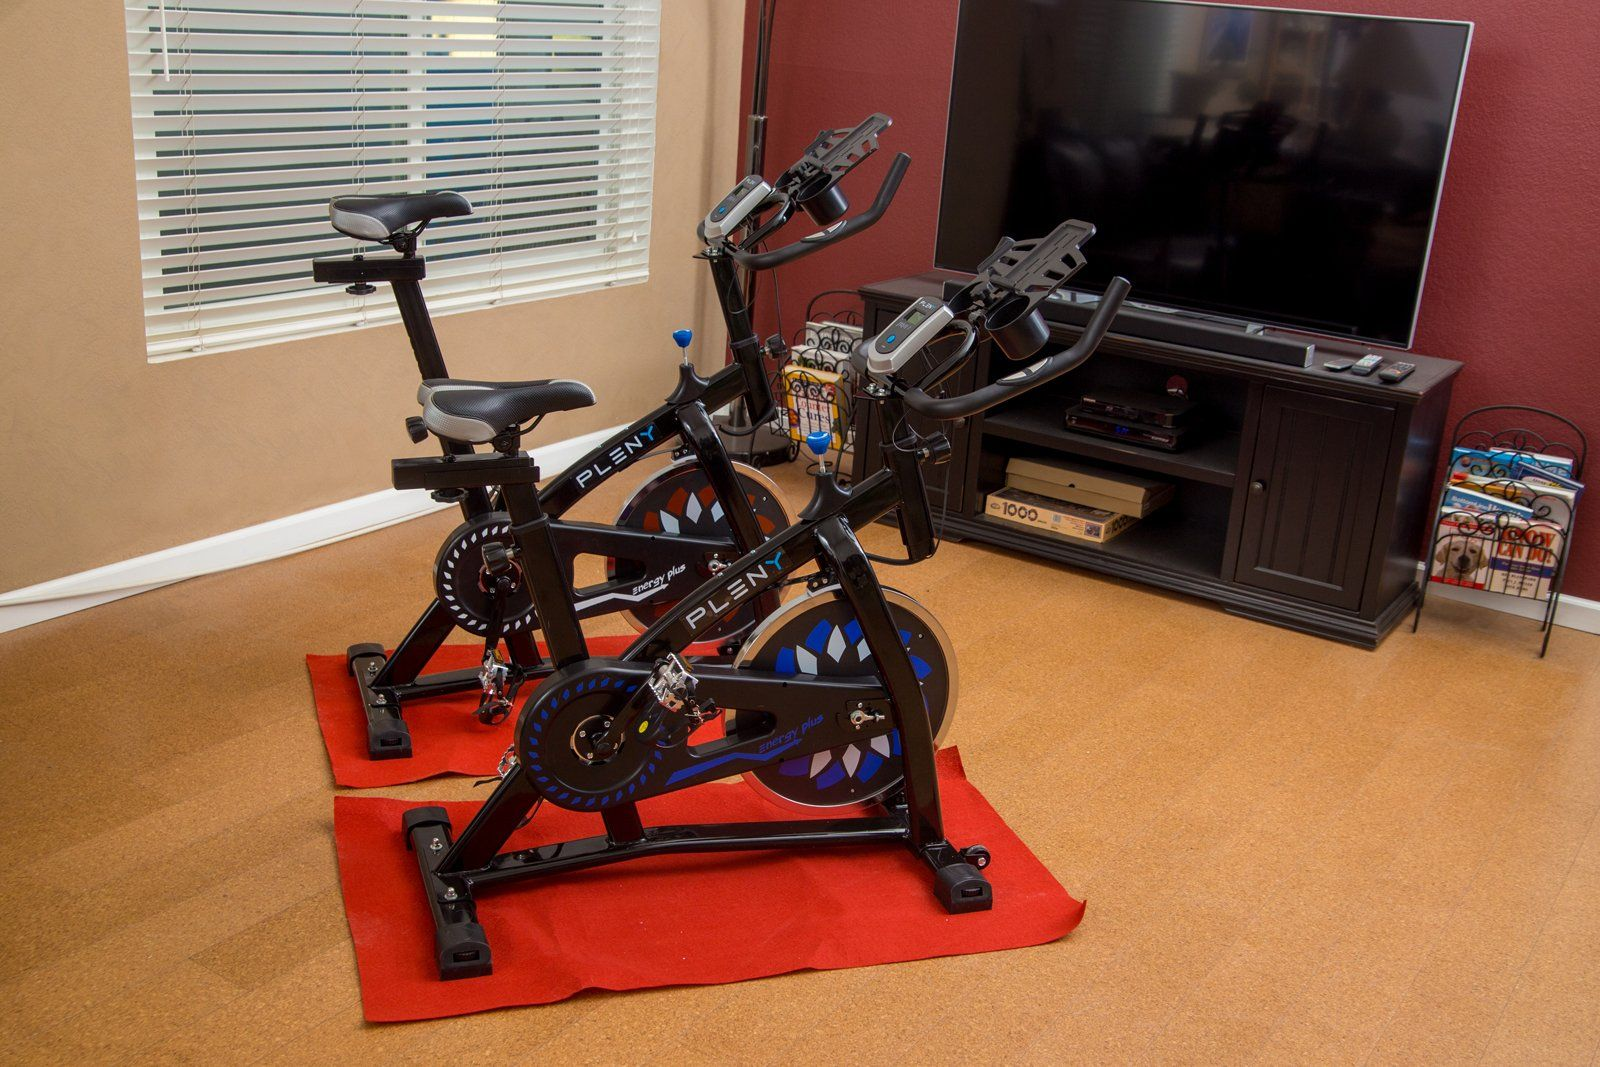 Pleny Indoor Stationary Cycle Bike For Tall People With